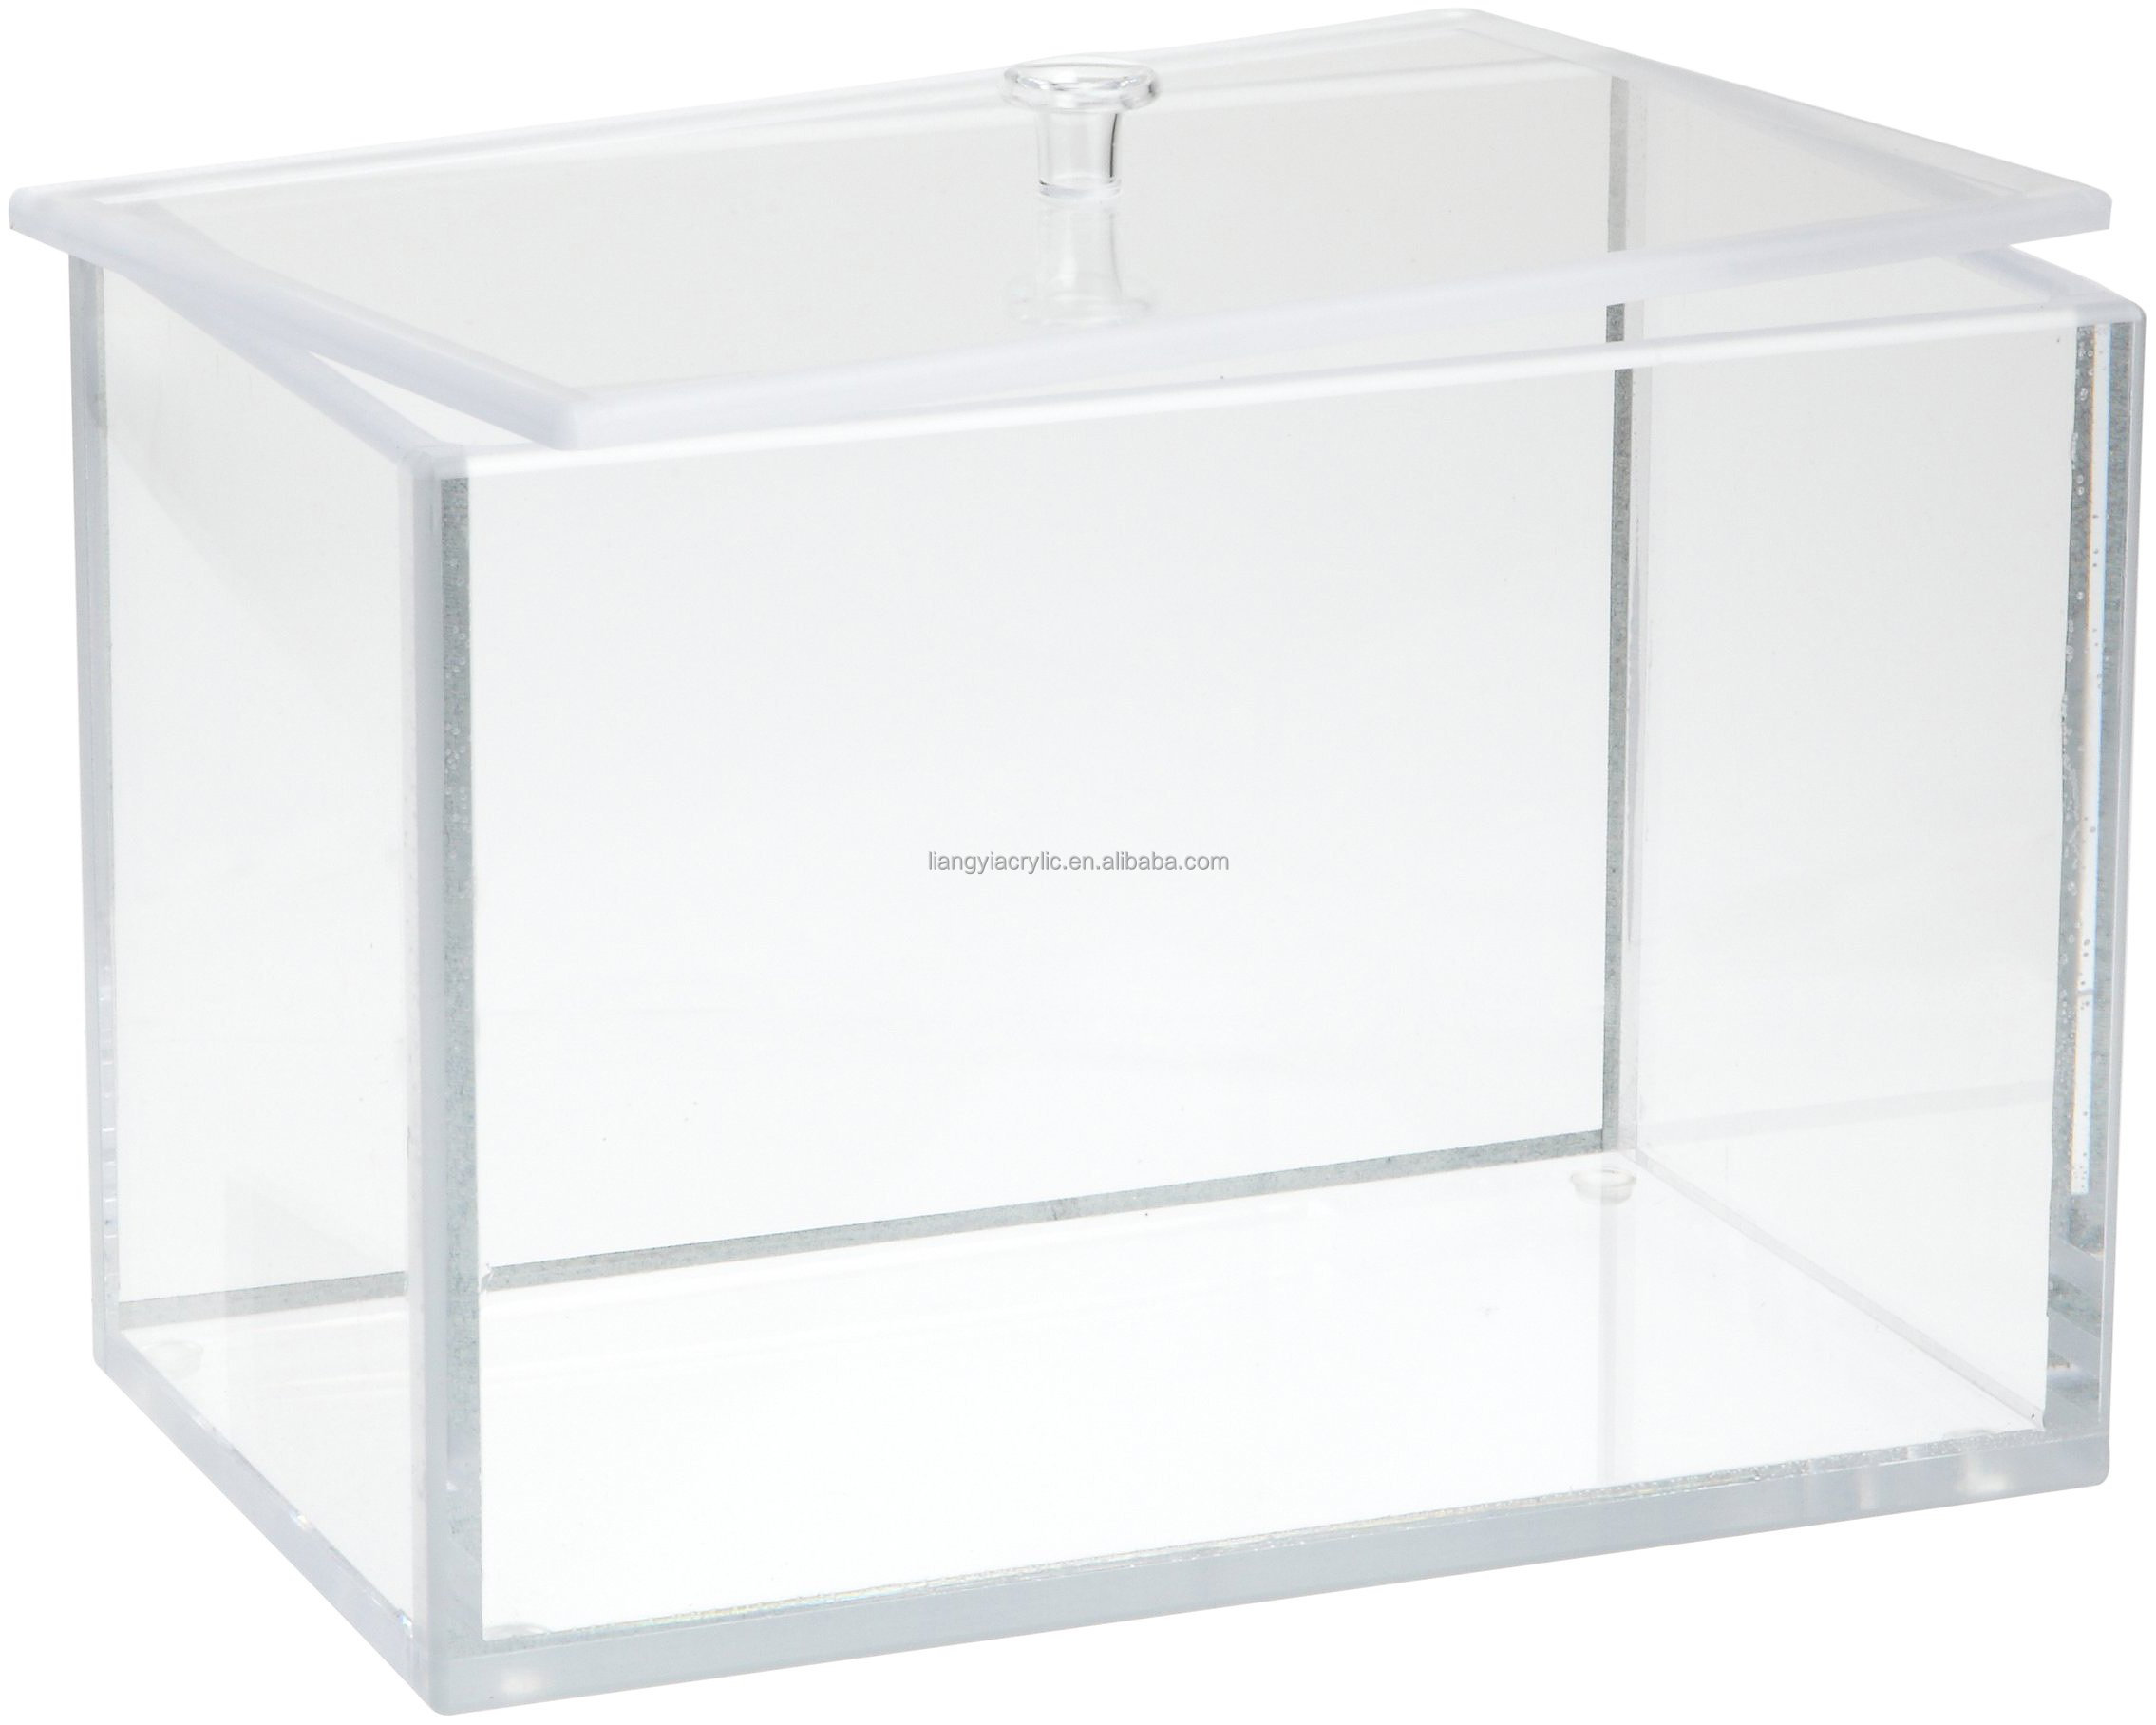 Clear acrylic storage box with lid factory  sc 1 st  Alibaba & Clear Acrylic Storage Box With Lid Factory - Buy Acrylic Box With ... Aboutintivar.Com